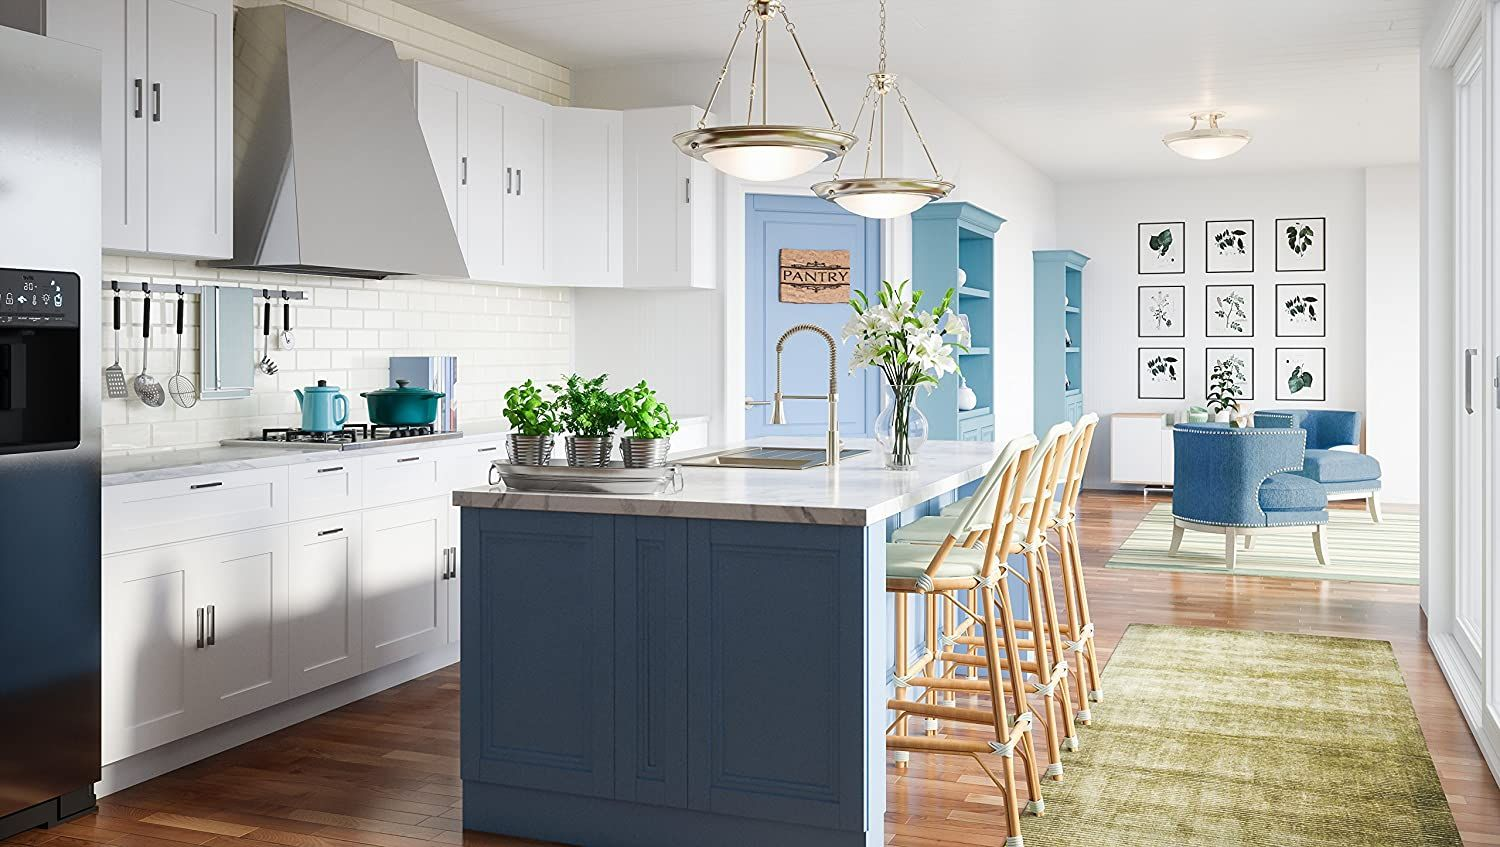 Create A Stunning Kitchen With Design House Brookings Kitchen Cabinets We Offer You A Less Expensive O In 2020 House Design Kitchen Kitchen Base Cabinets House Design